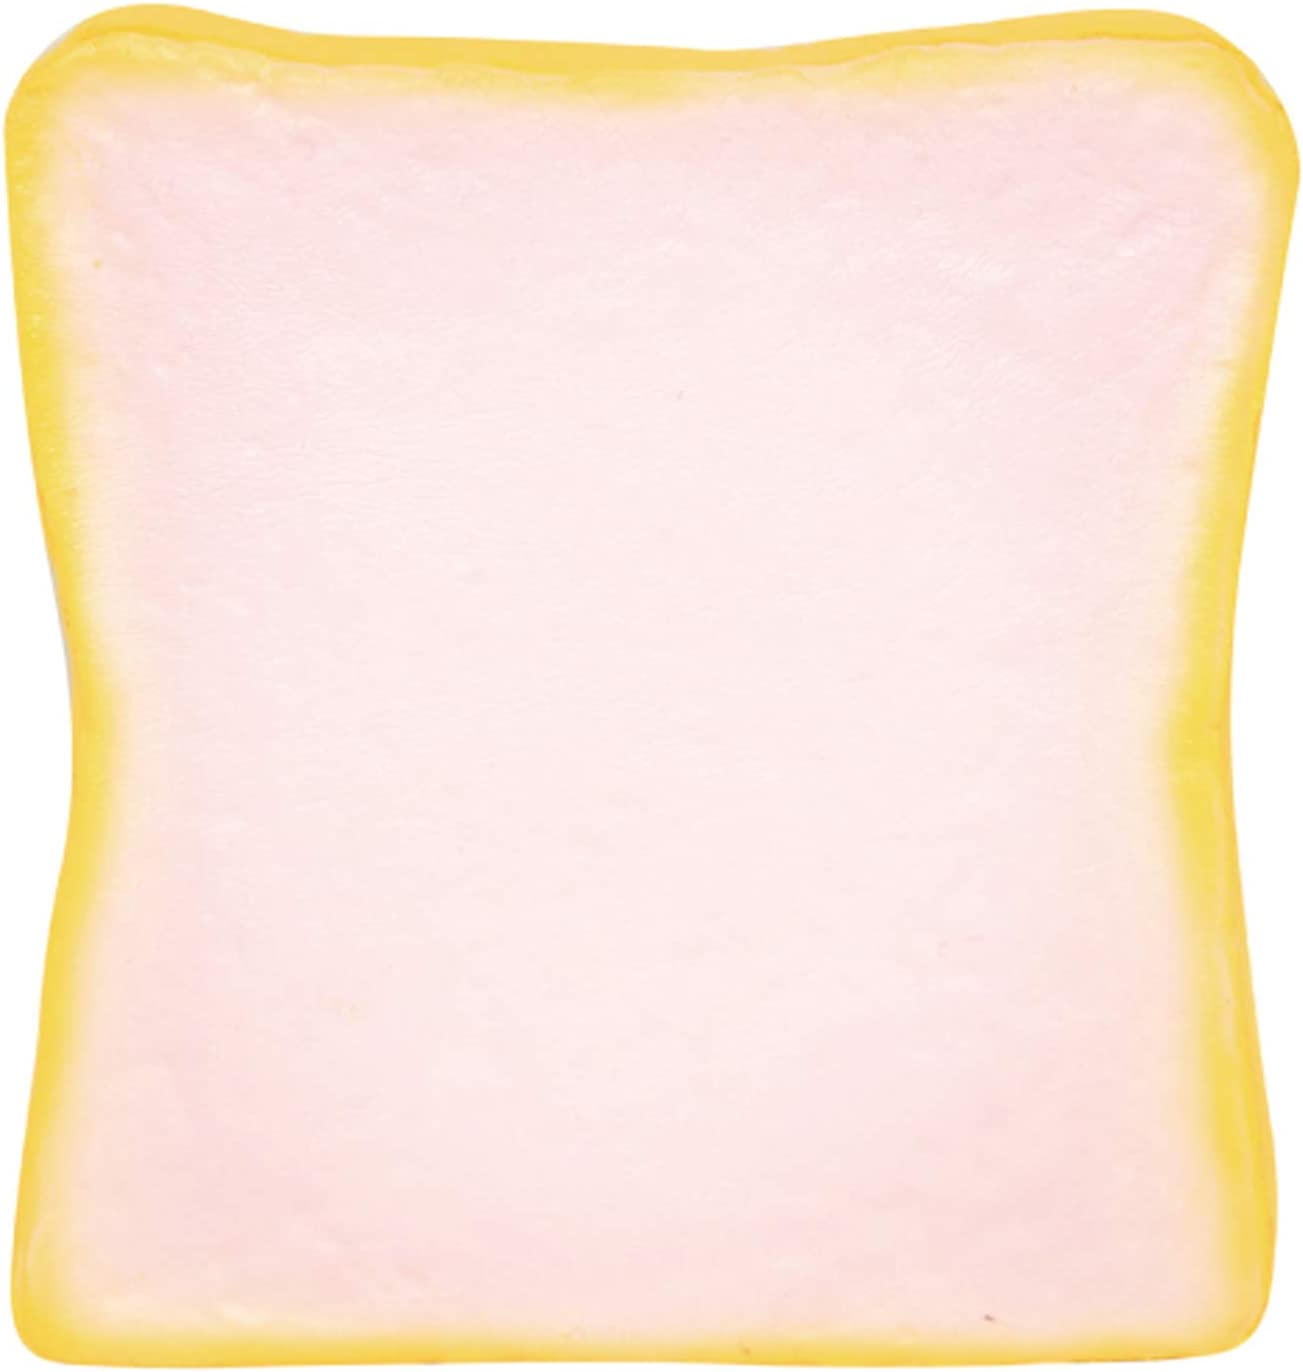 iBloom Aoyama Tokyo Milk Toast Realistic Bread Slow Rising Squishy Toy (Strawberry Scented, Pink, 5.1 Inch) [Kawaii Squishies for Party Favors, Stress Balls, Birthday Gifts for Kids, Girls, Boys]